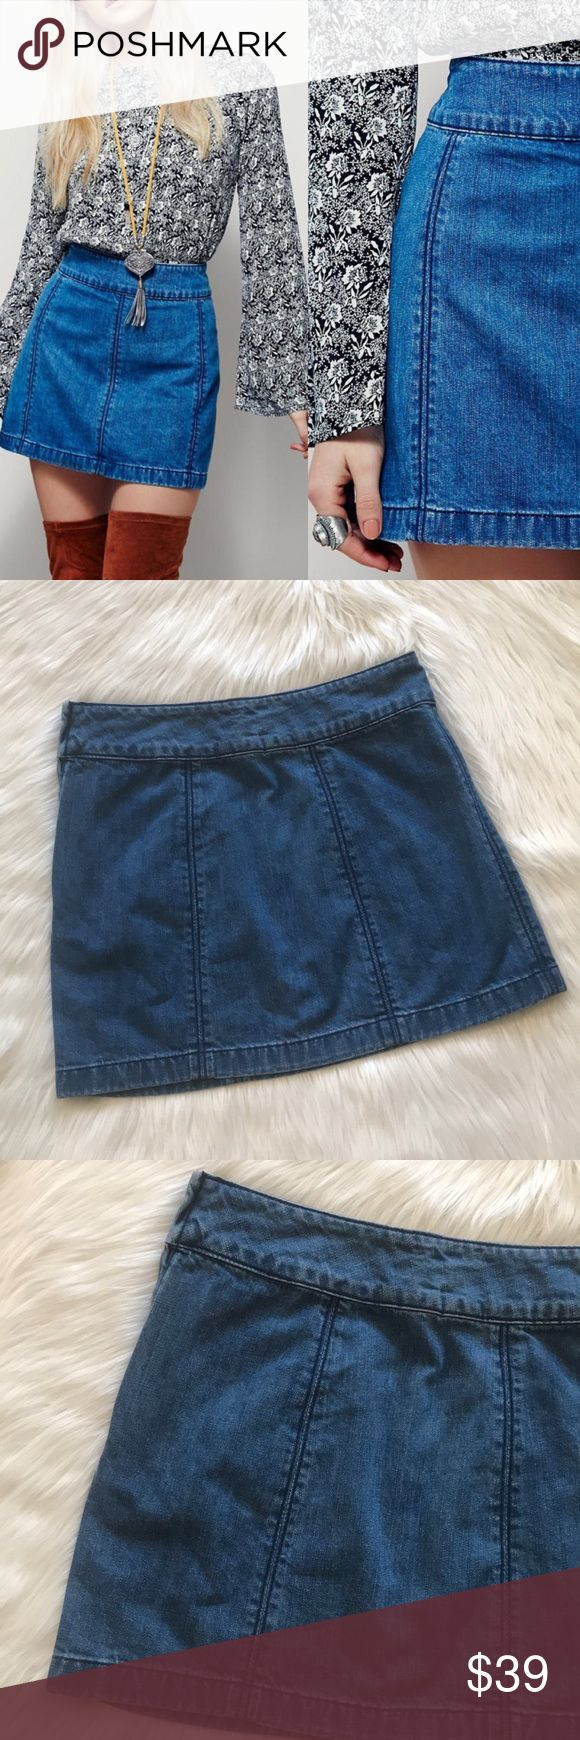 """Free People Denim Zip Up Mini Skirt Jean Skirt The perfect staple piece for your outfit! Medium wash denim with deeper blue seam stitching for added detail and has natural fading at the waistband and hemline. Never worn. Zips up the side. Length is 15.5"""" Free People Skirts Mini"""